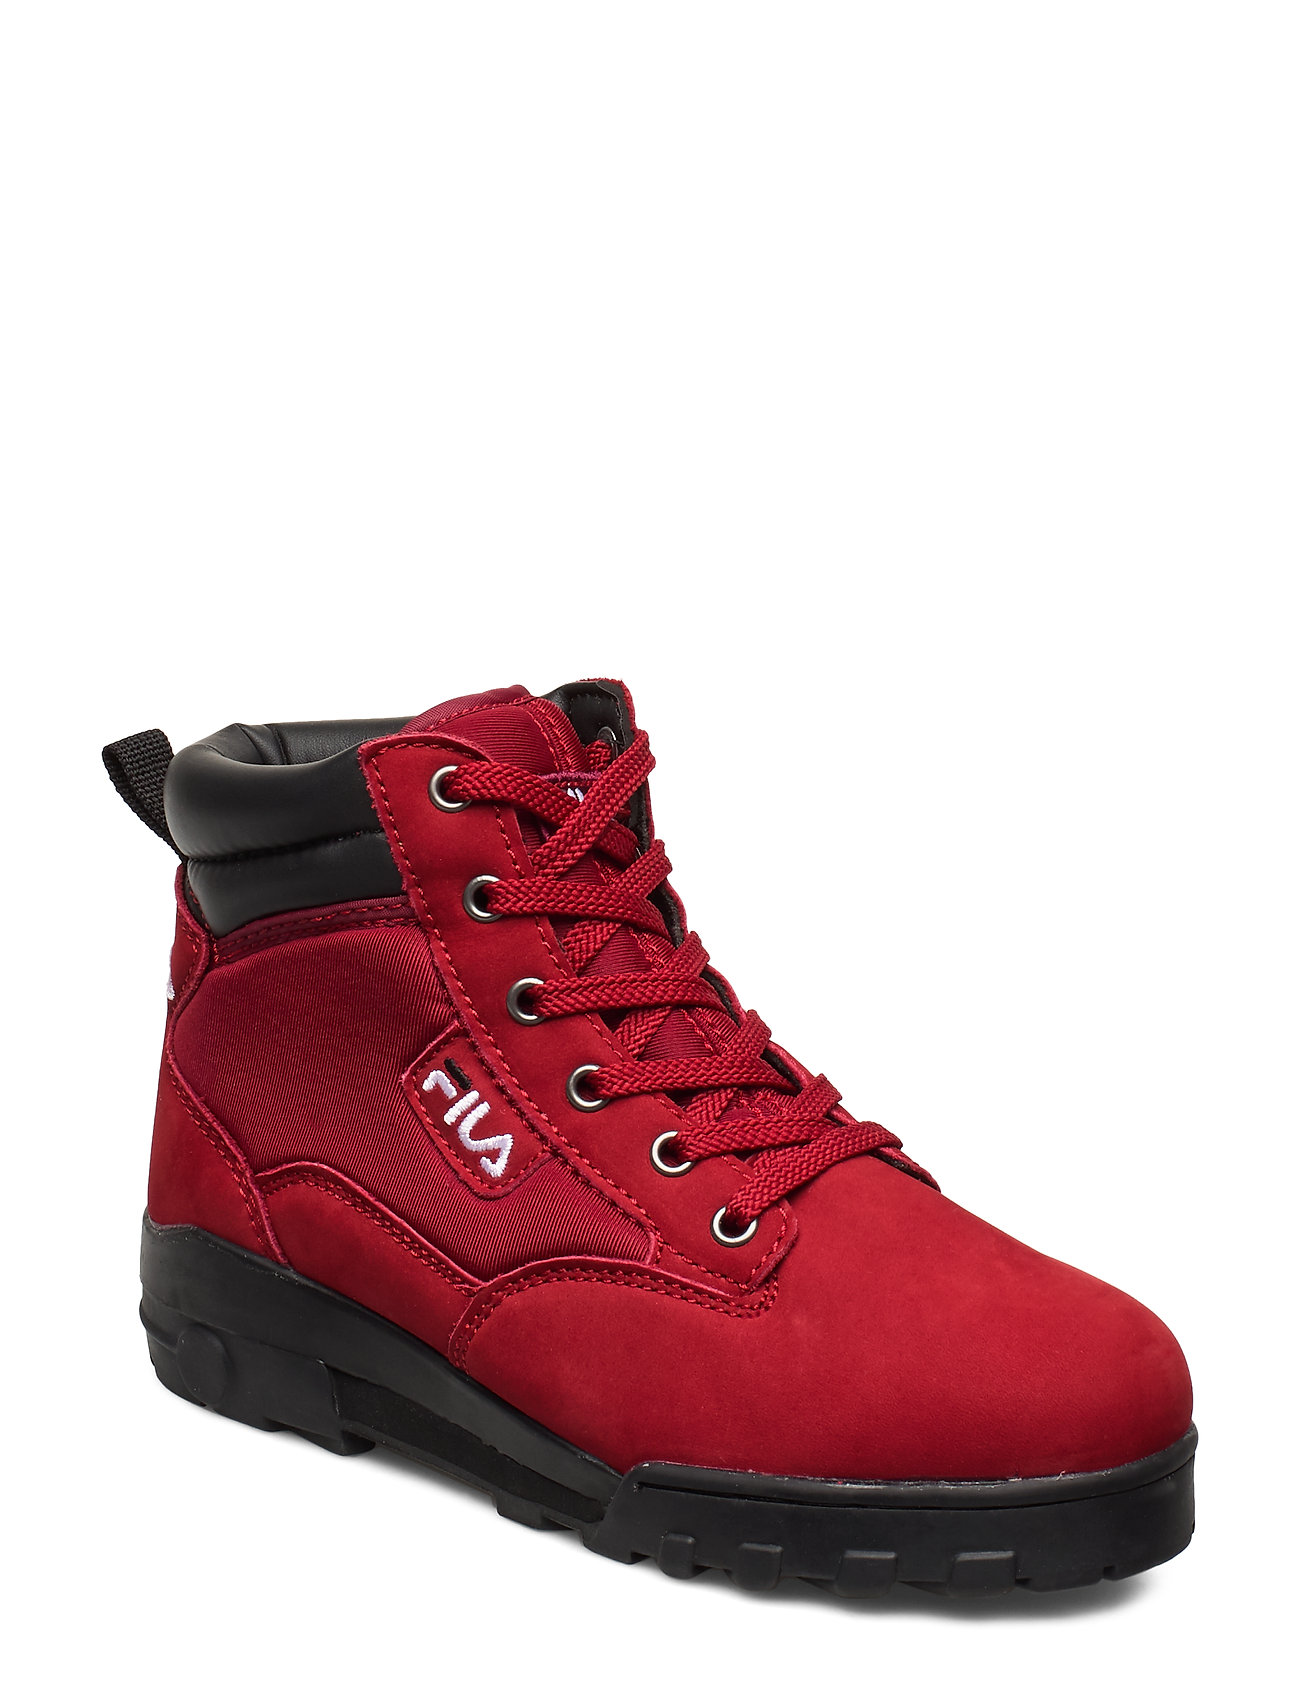 FILA Grunge Ii Mid Wmn Shoes Boots Ankle Boots Ankle Boots Flat Heel Rot FILA